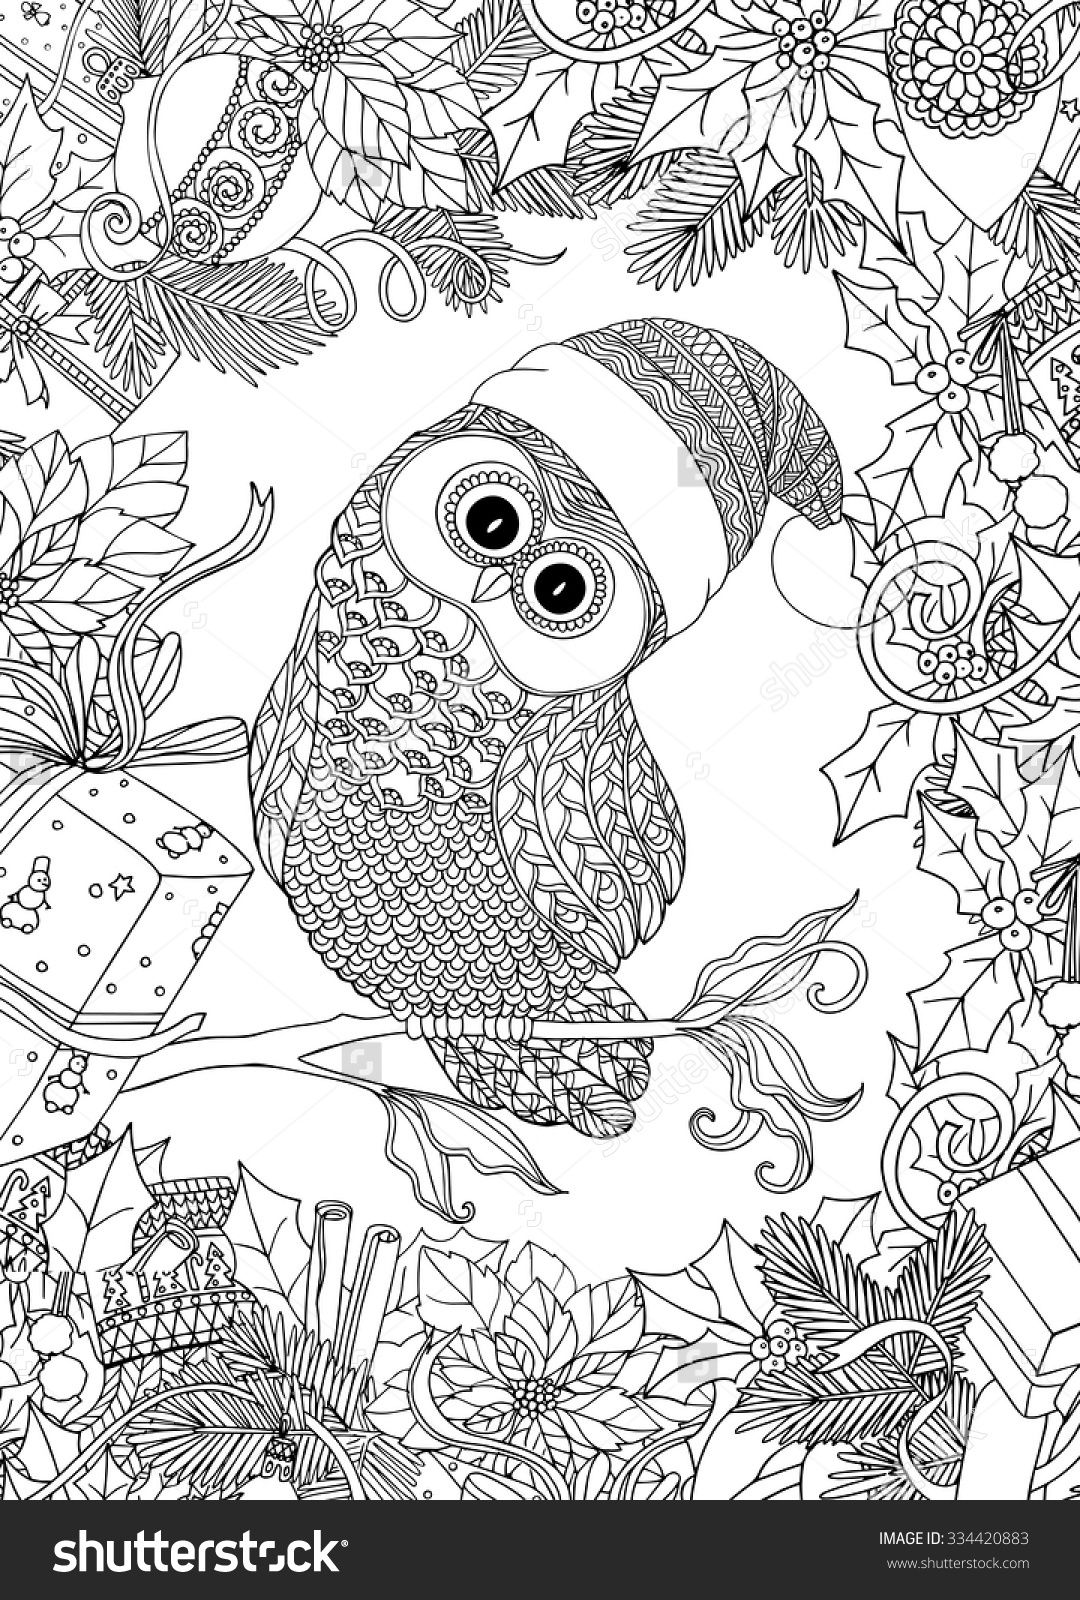 Coloring pages for adults cute - Coloring Book For Adult And Older Children Coloring Page With Cute Owl In Santa Claus Cap And Christmas Wreath Frame Outline Drawing In Zentangle Style